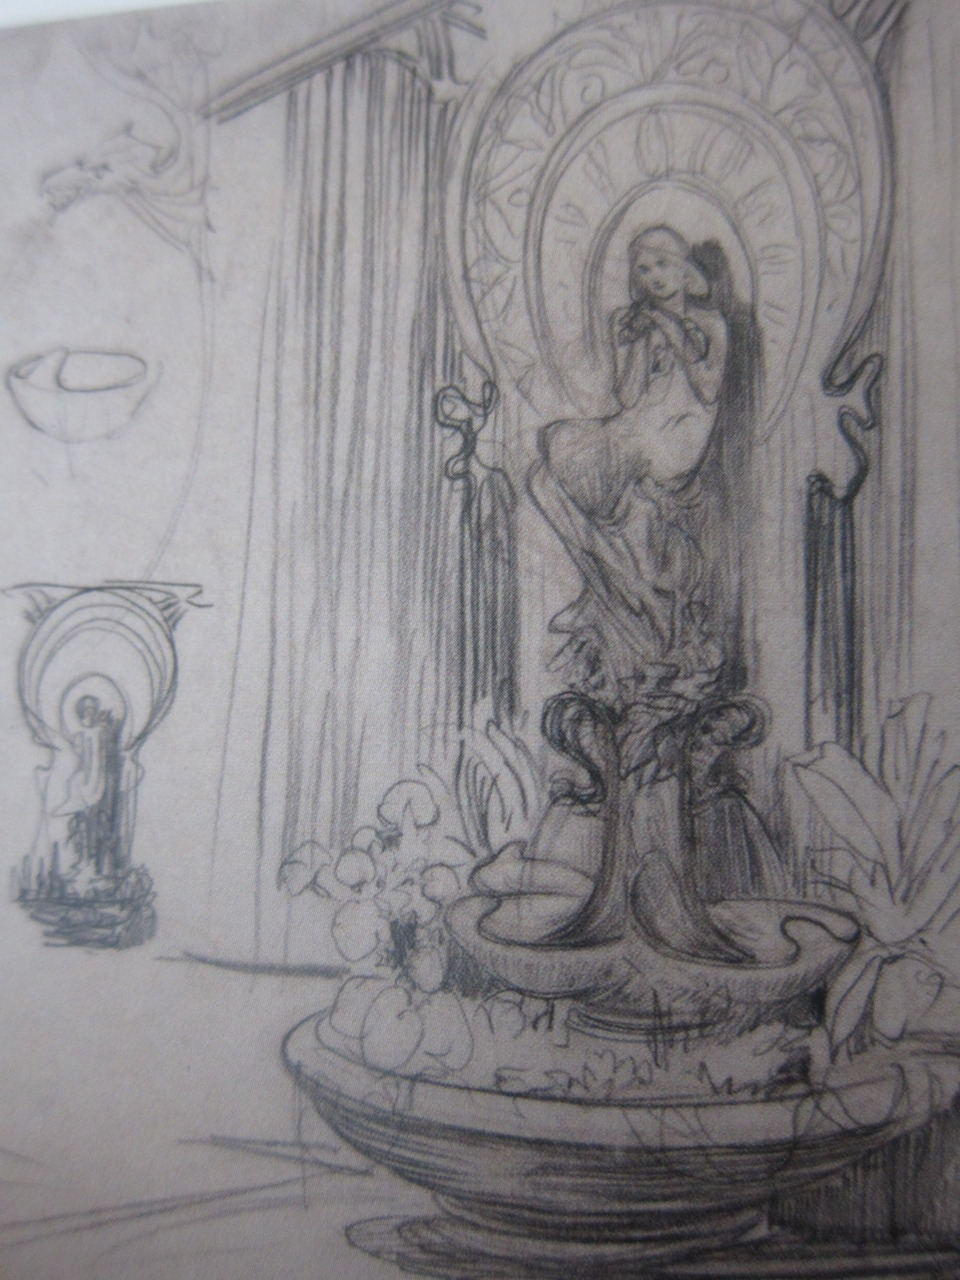 Sketch for the Fouquet Jewelry shop, designed by Alphonse Mucha in 1900.